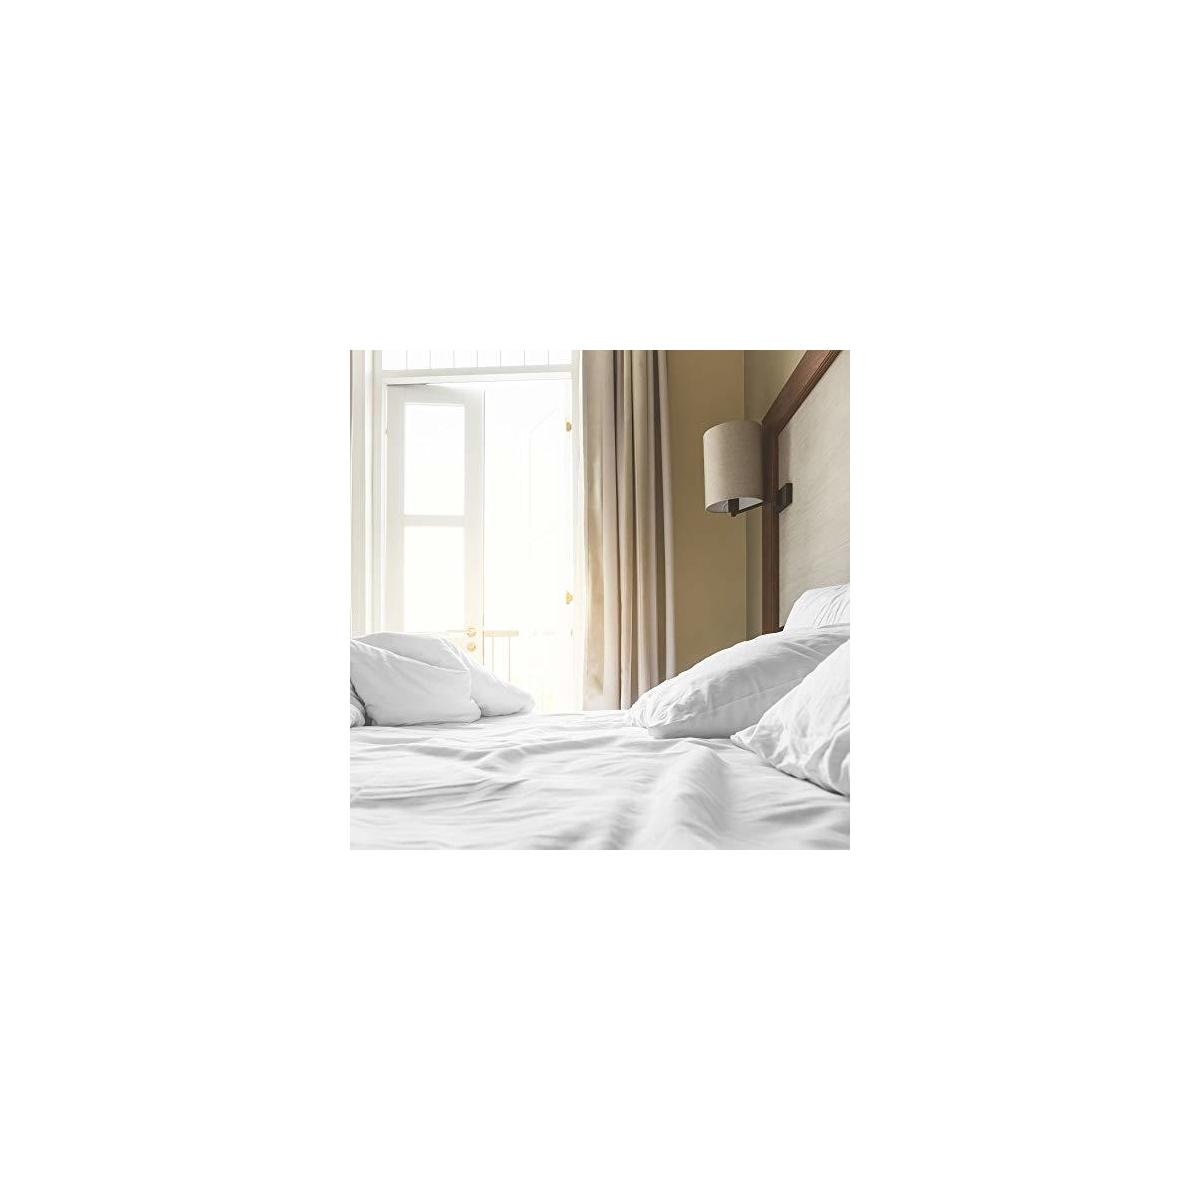 Sweave Eucalyptus Tencel & Egyptian Cotton KING SIZE Fitted Sheet Set, Luxury Bedding, Insanely Soft, Comfortably Cool Bed Sheets, Percale, Anti-Wrinkle, Eco-Friendly.